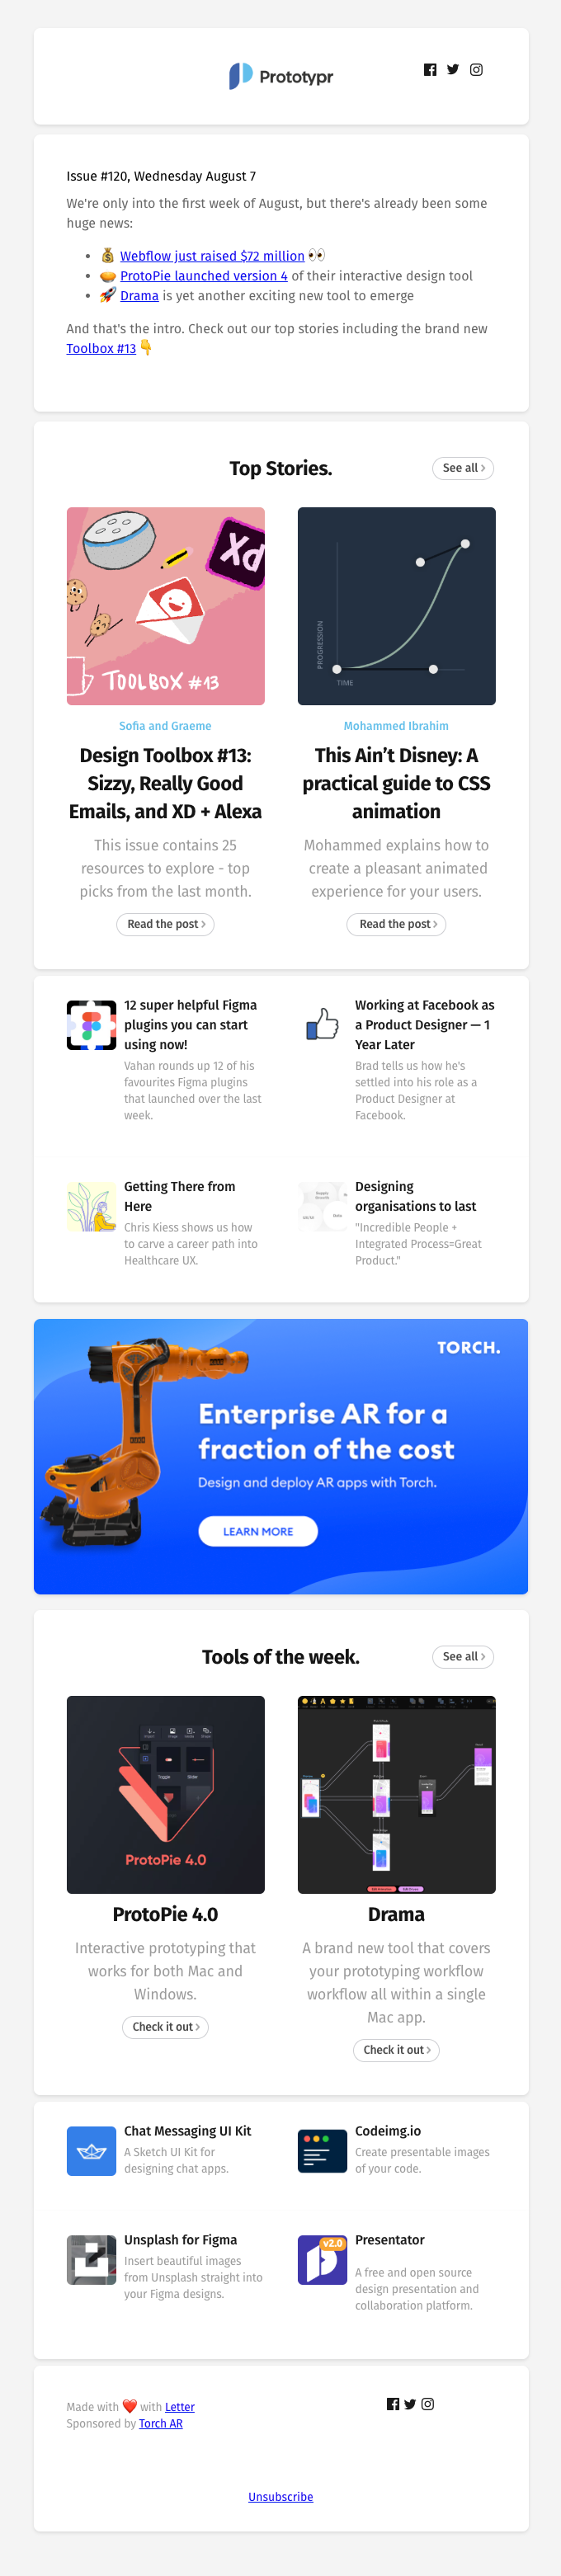 Webflow just raised $72 million 👀, ProtoPie launch 4.0 🥧, and Prototypr Toolbox #13 is out!